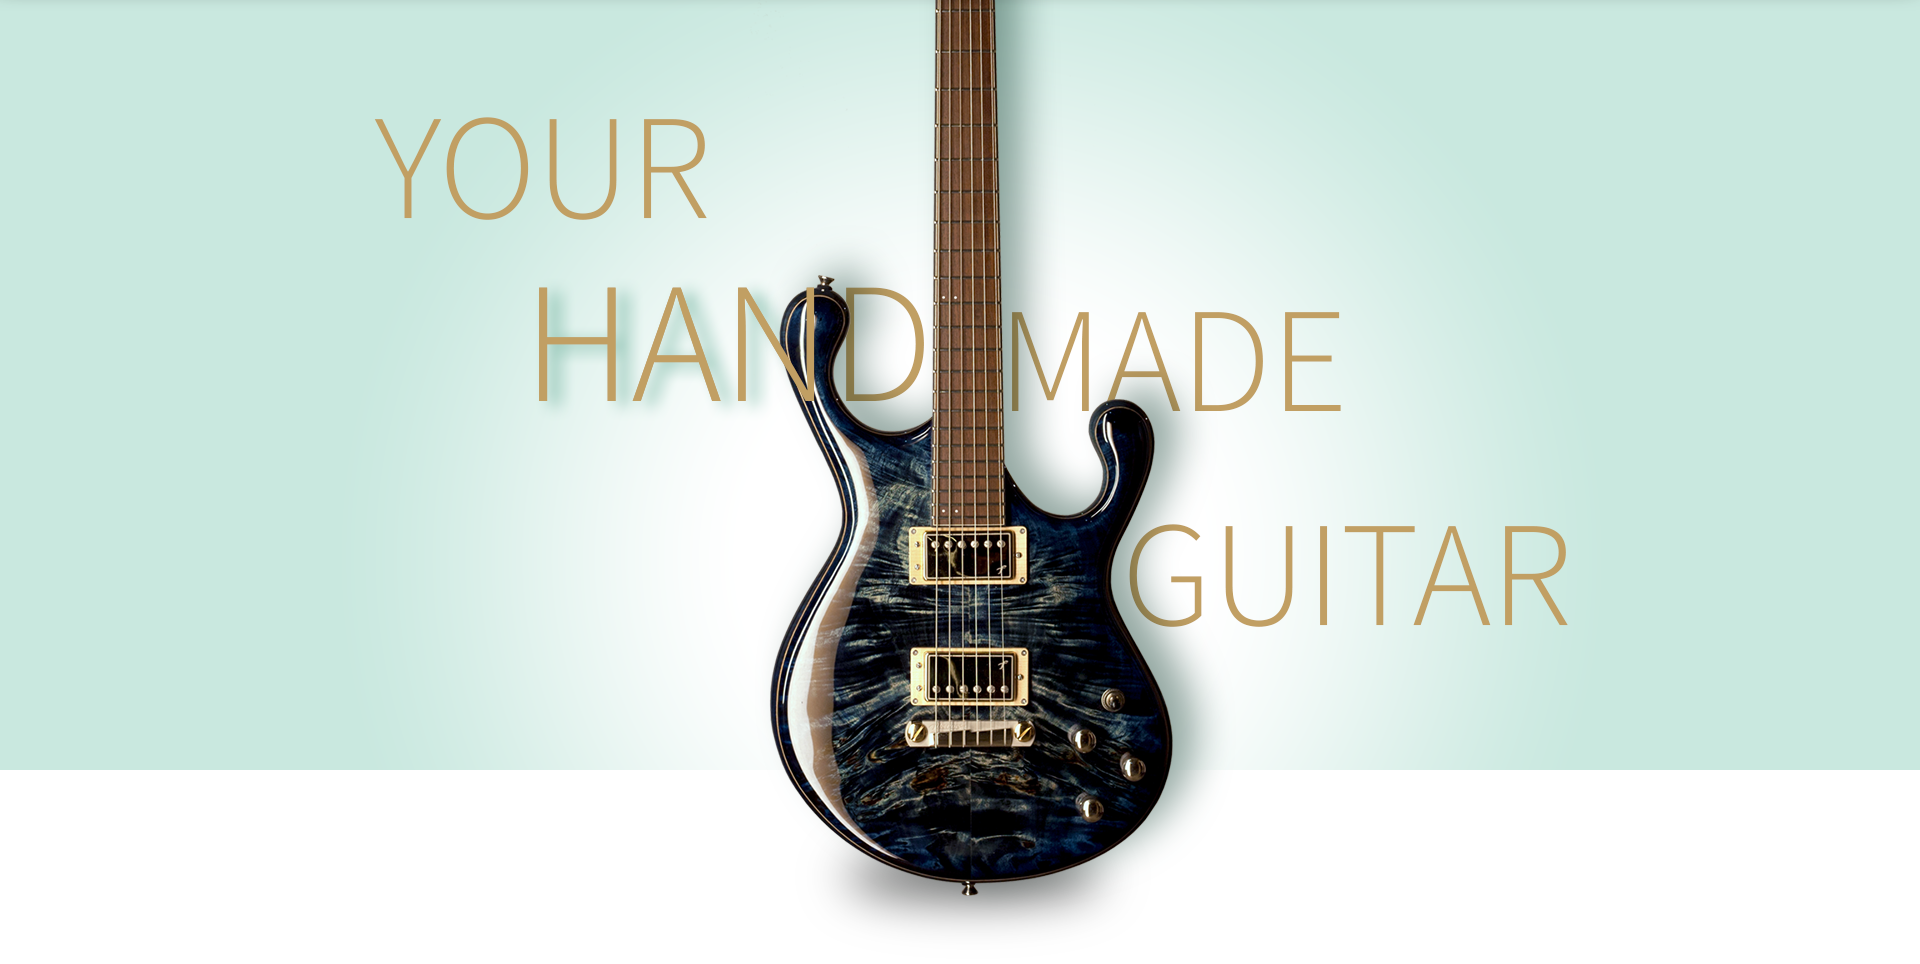 Your handmade guitar